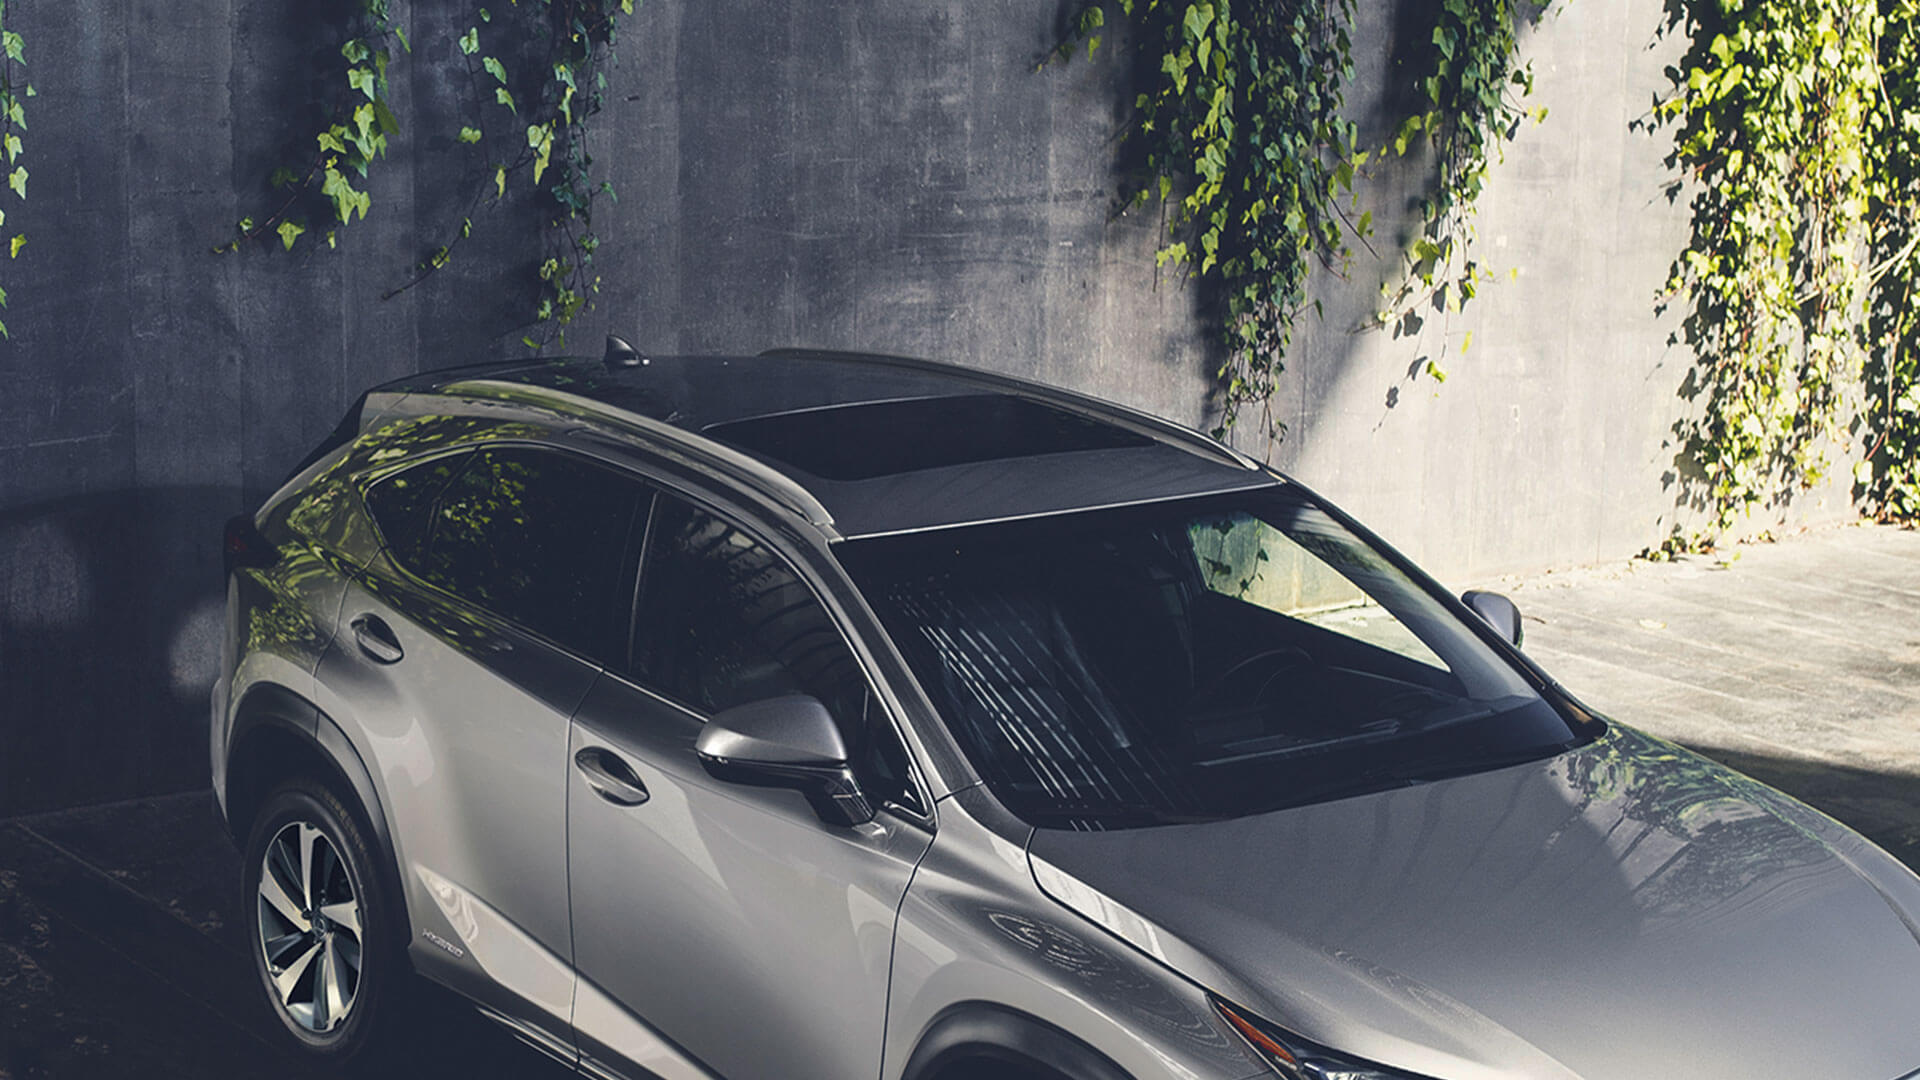 2018 lexus nx my18 features glass sunroof